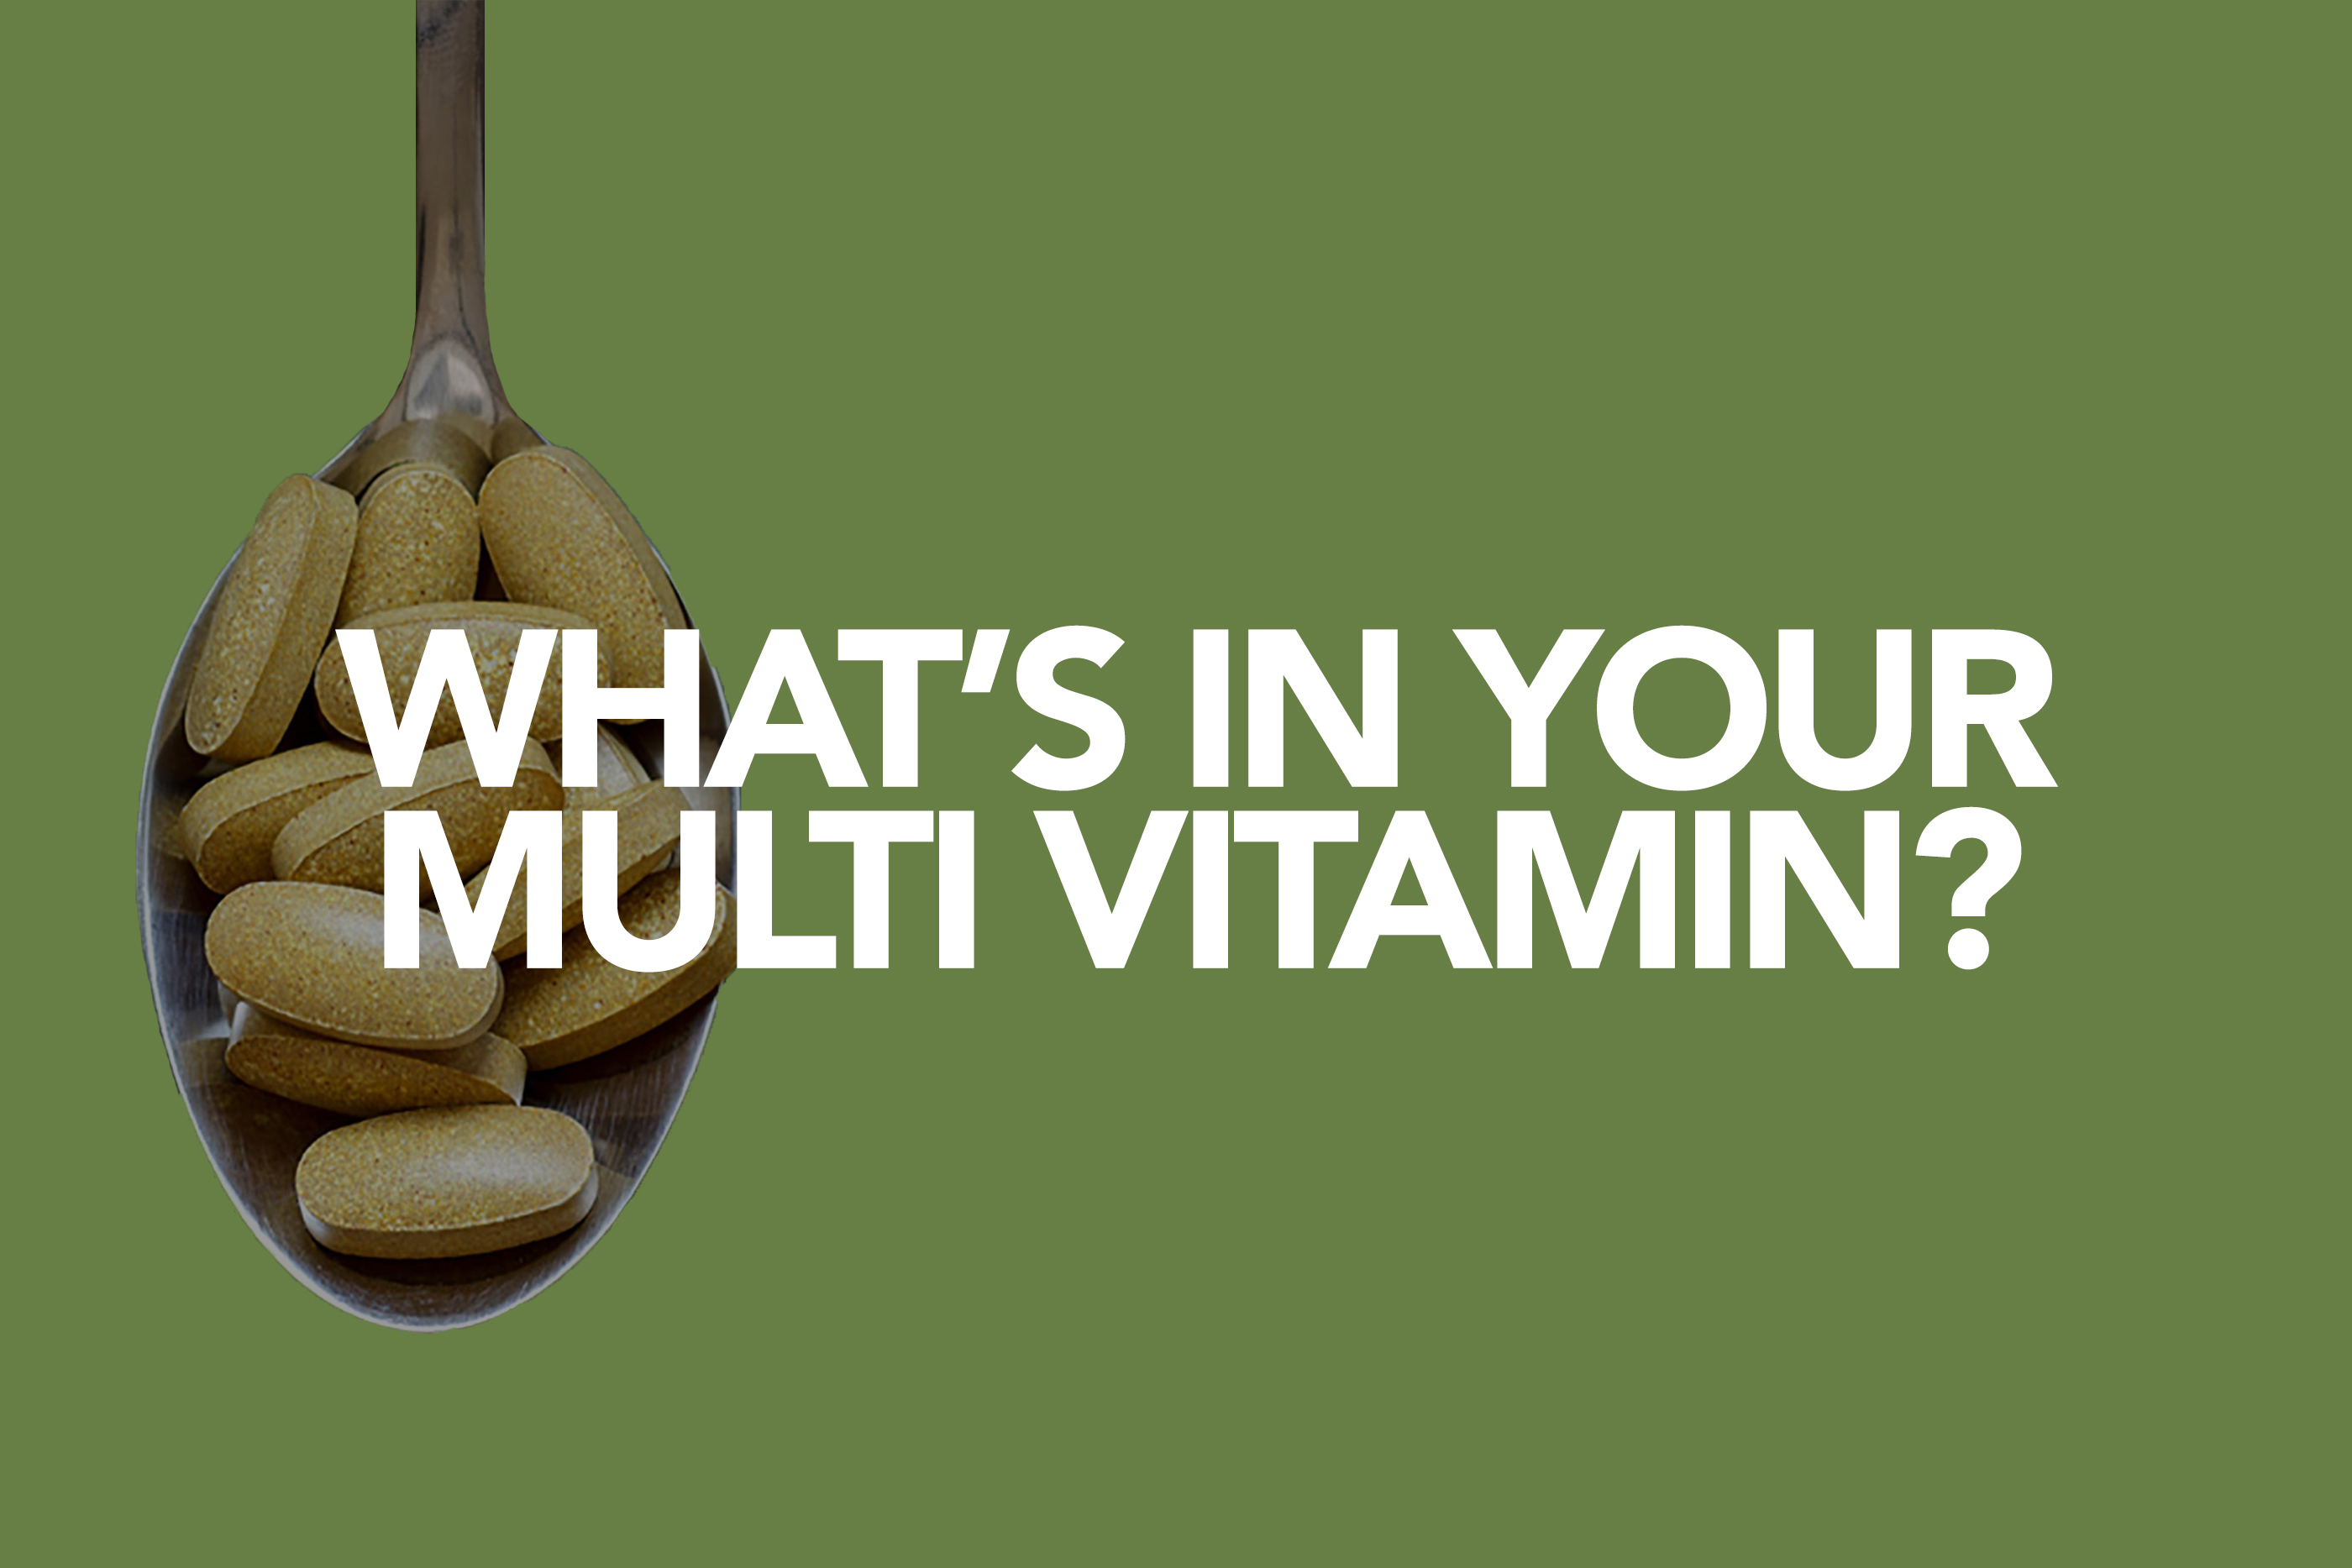 WHAT'S IN YOUR MULTI VITAMIN?